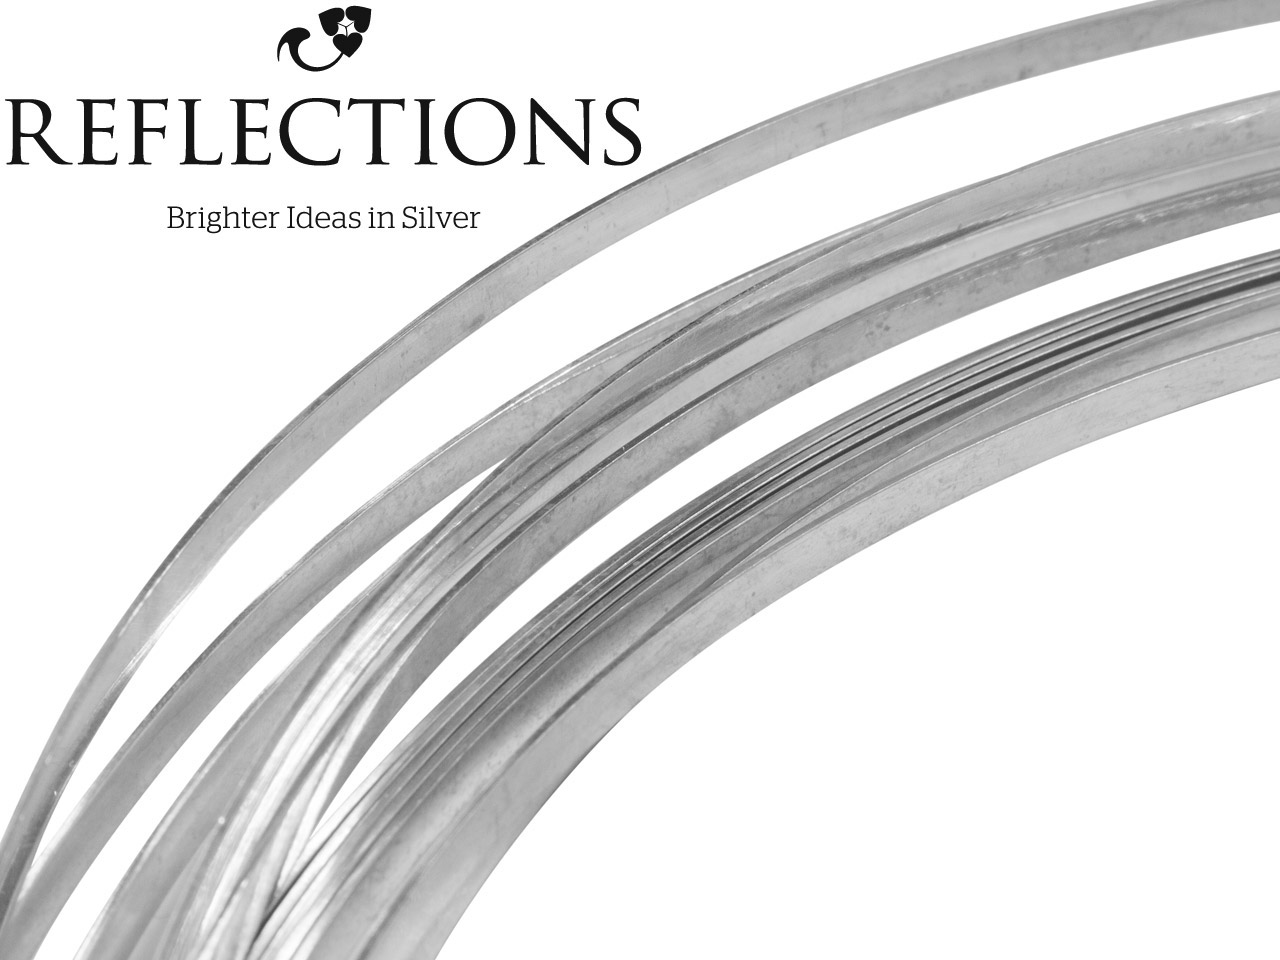 Reflections Silver Rectangular Wire 3.20mm X 1.60mm. Fully Annealed     Soft